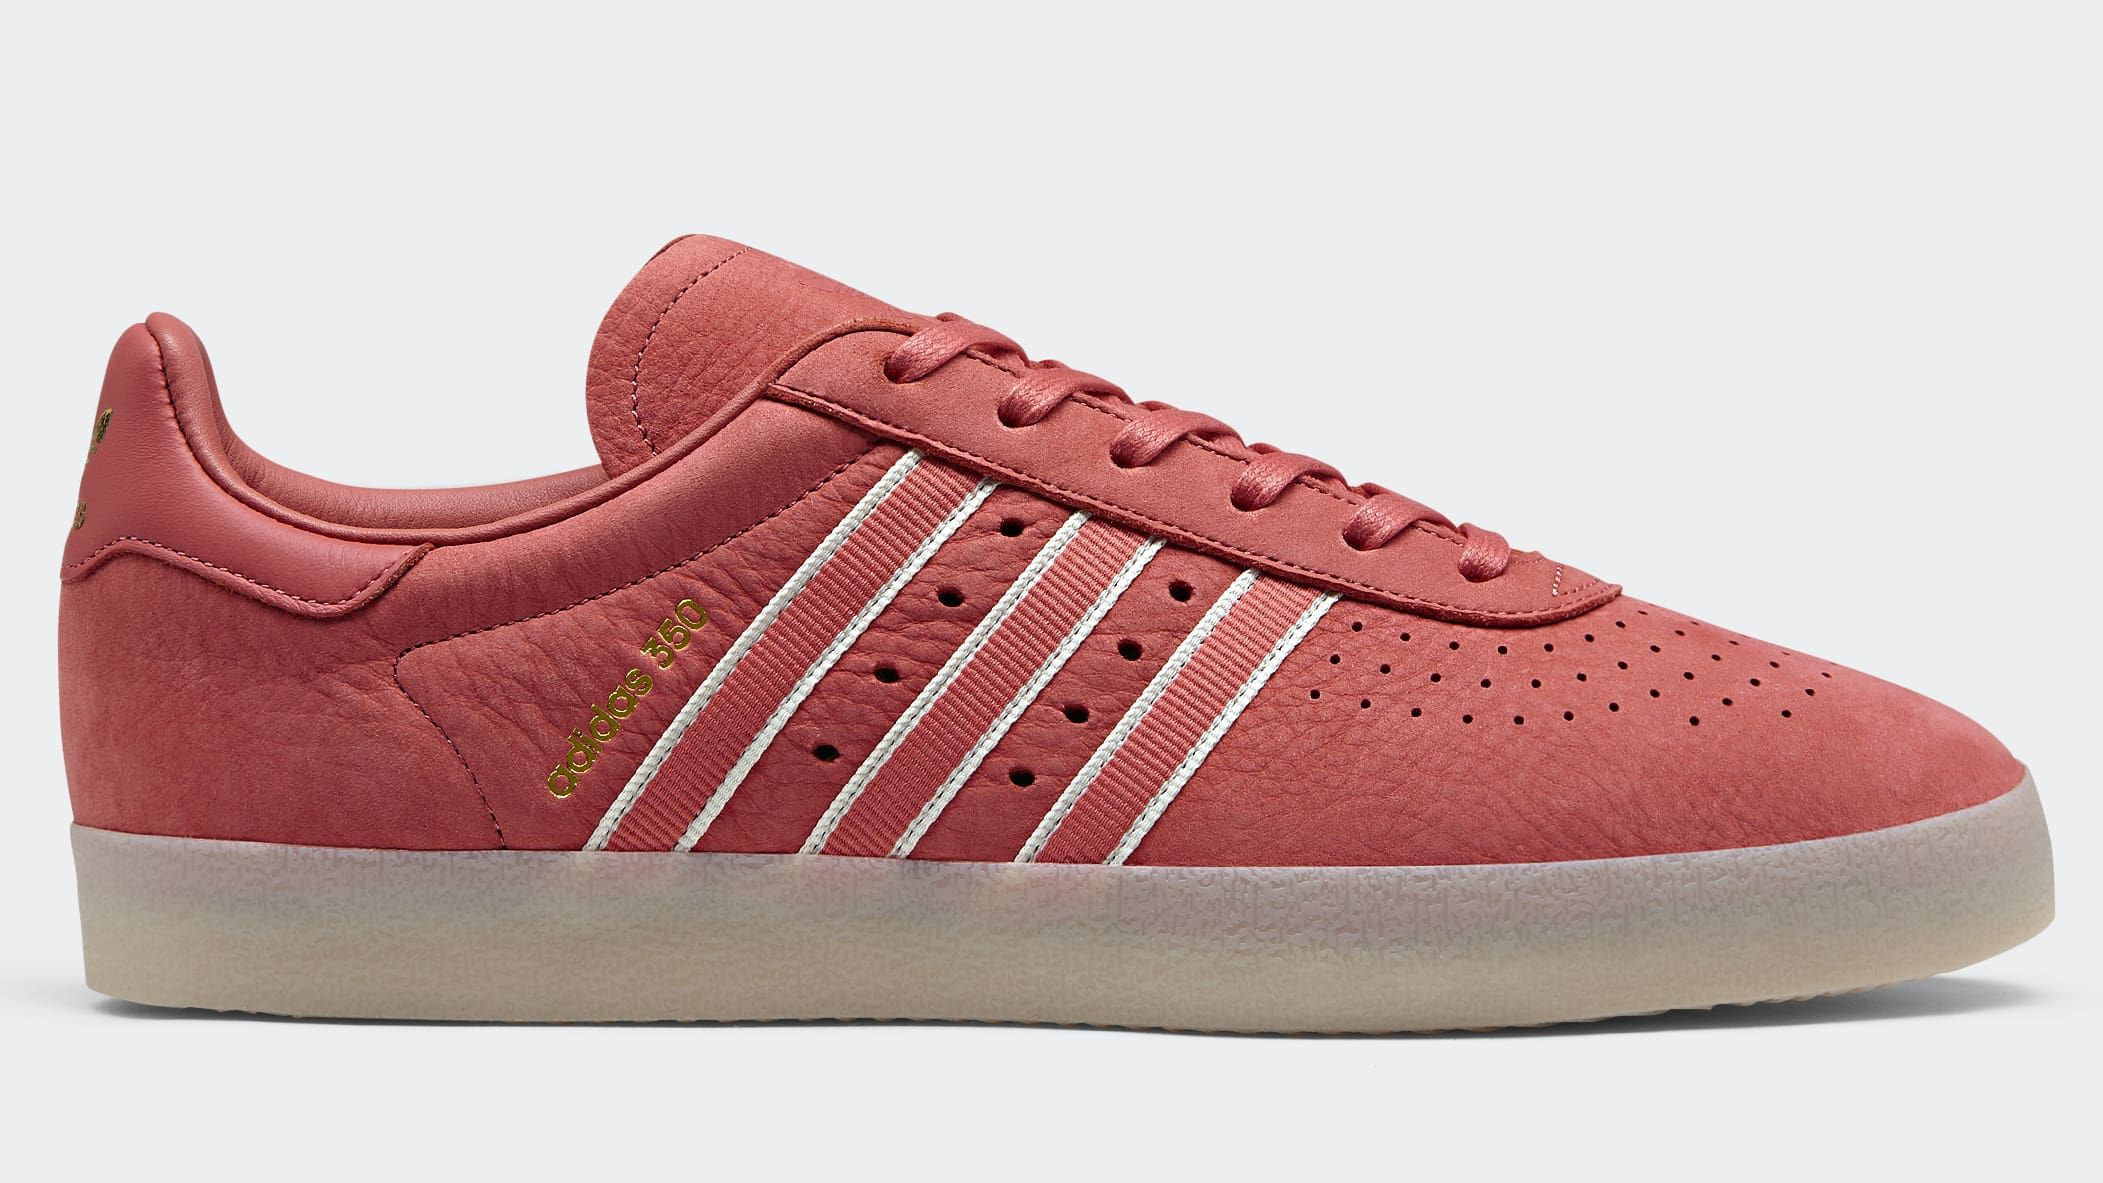 super popular 0fd41 77736 Oyster Holdings x Adidas 350 Trace Scarlet DB1975